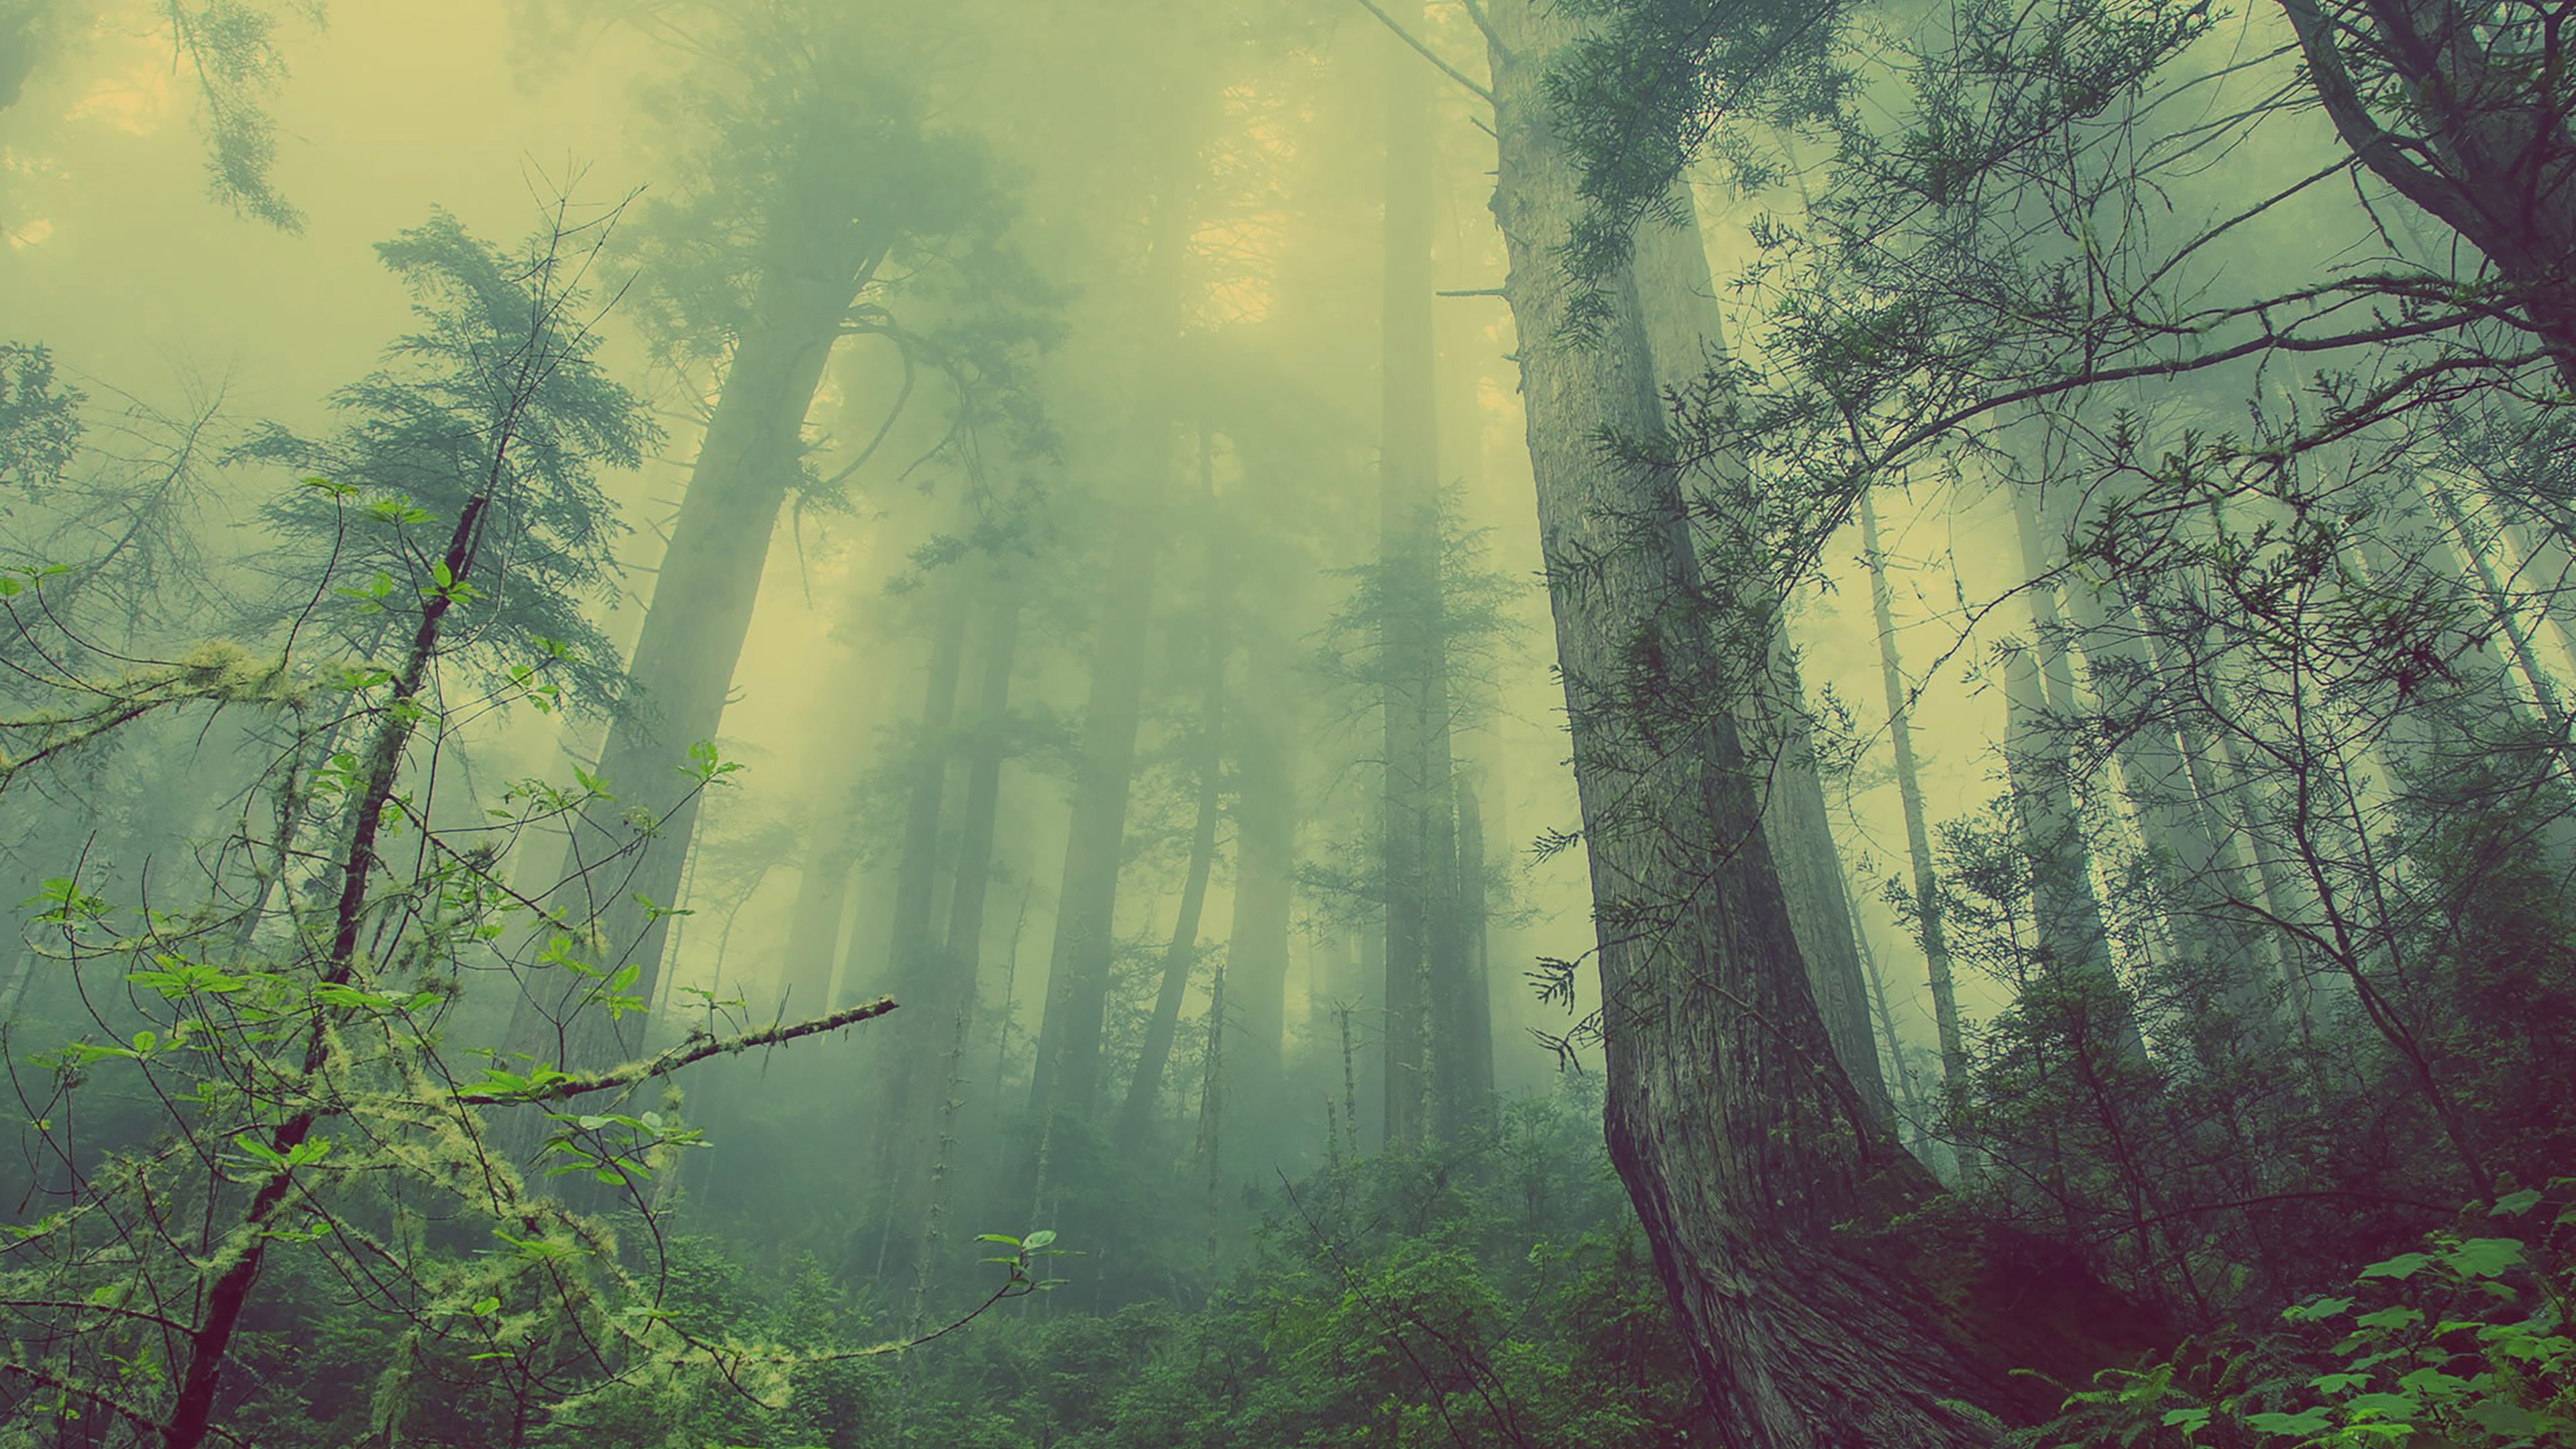 4k Laptop Wallpaper Fall Forest Mn31 Forest Wood Fog Nature Green Papers Co